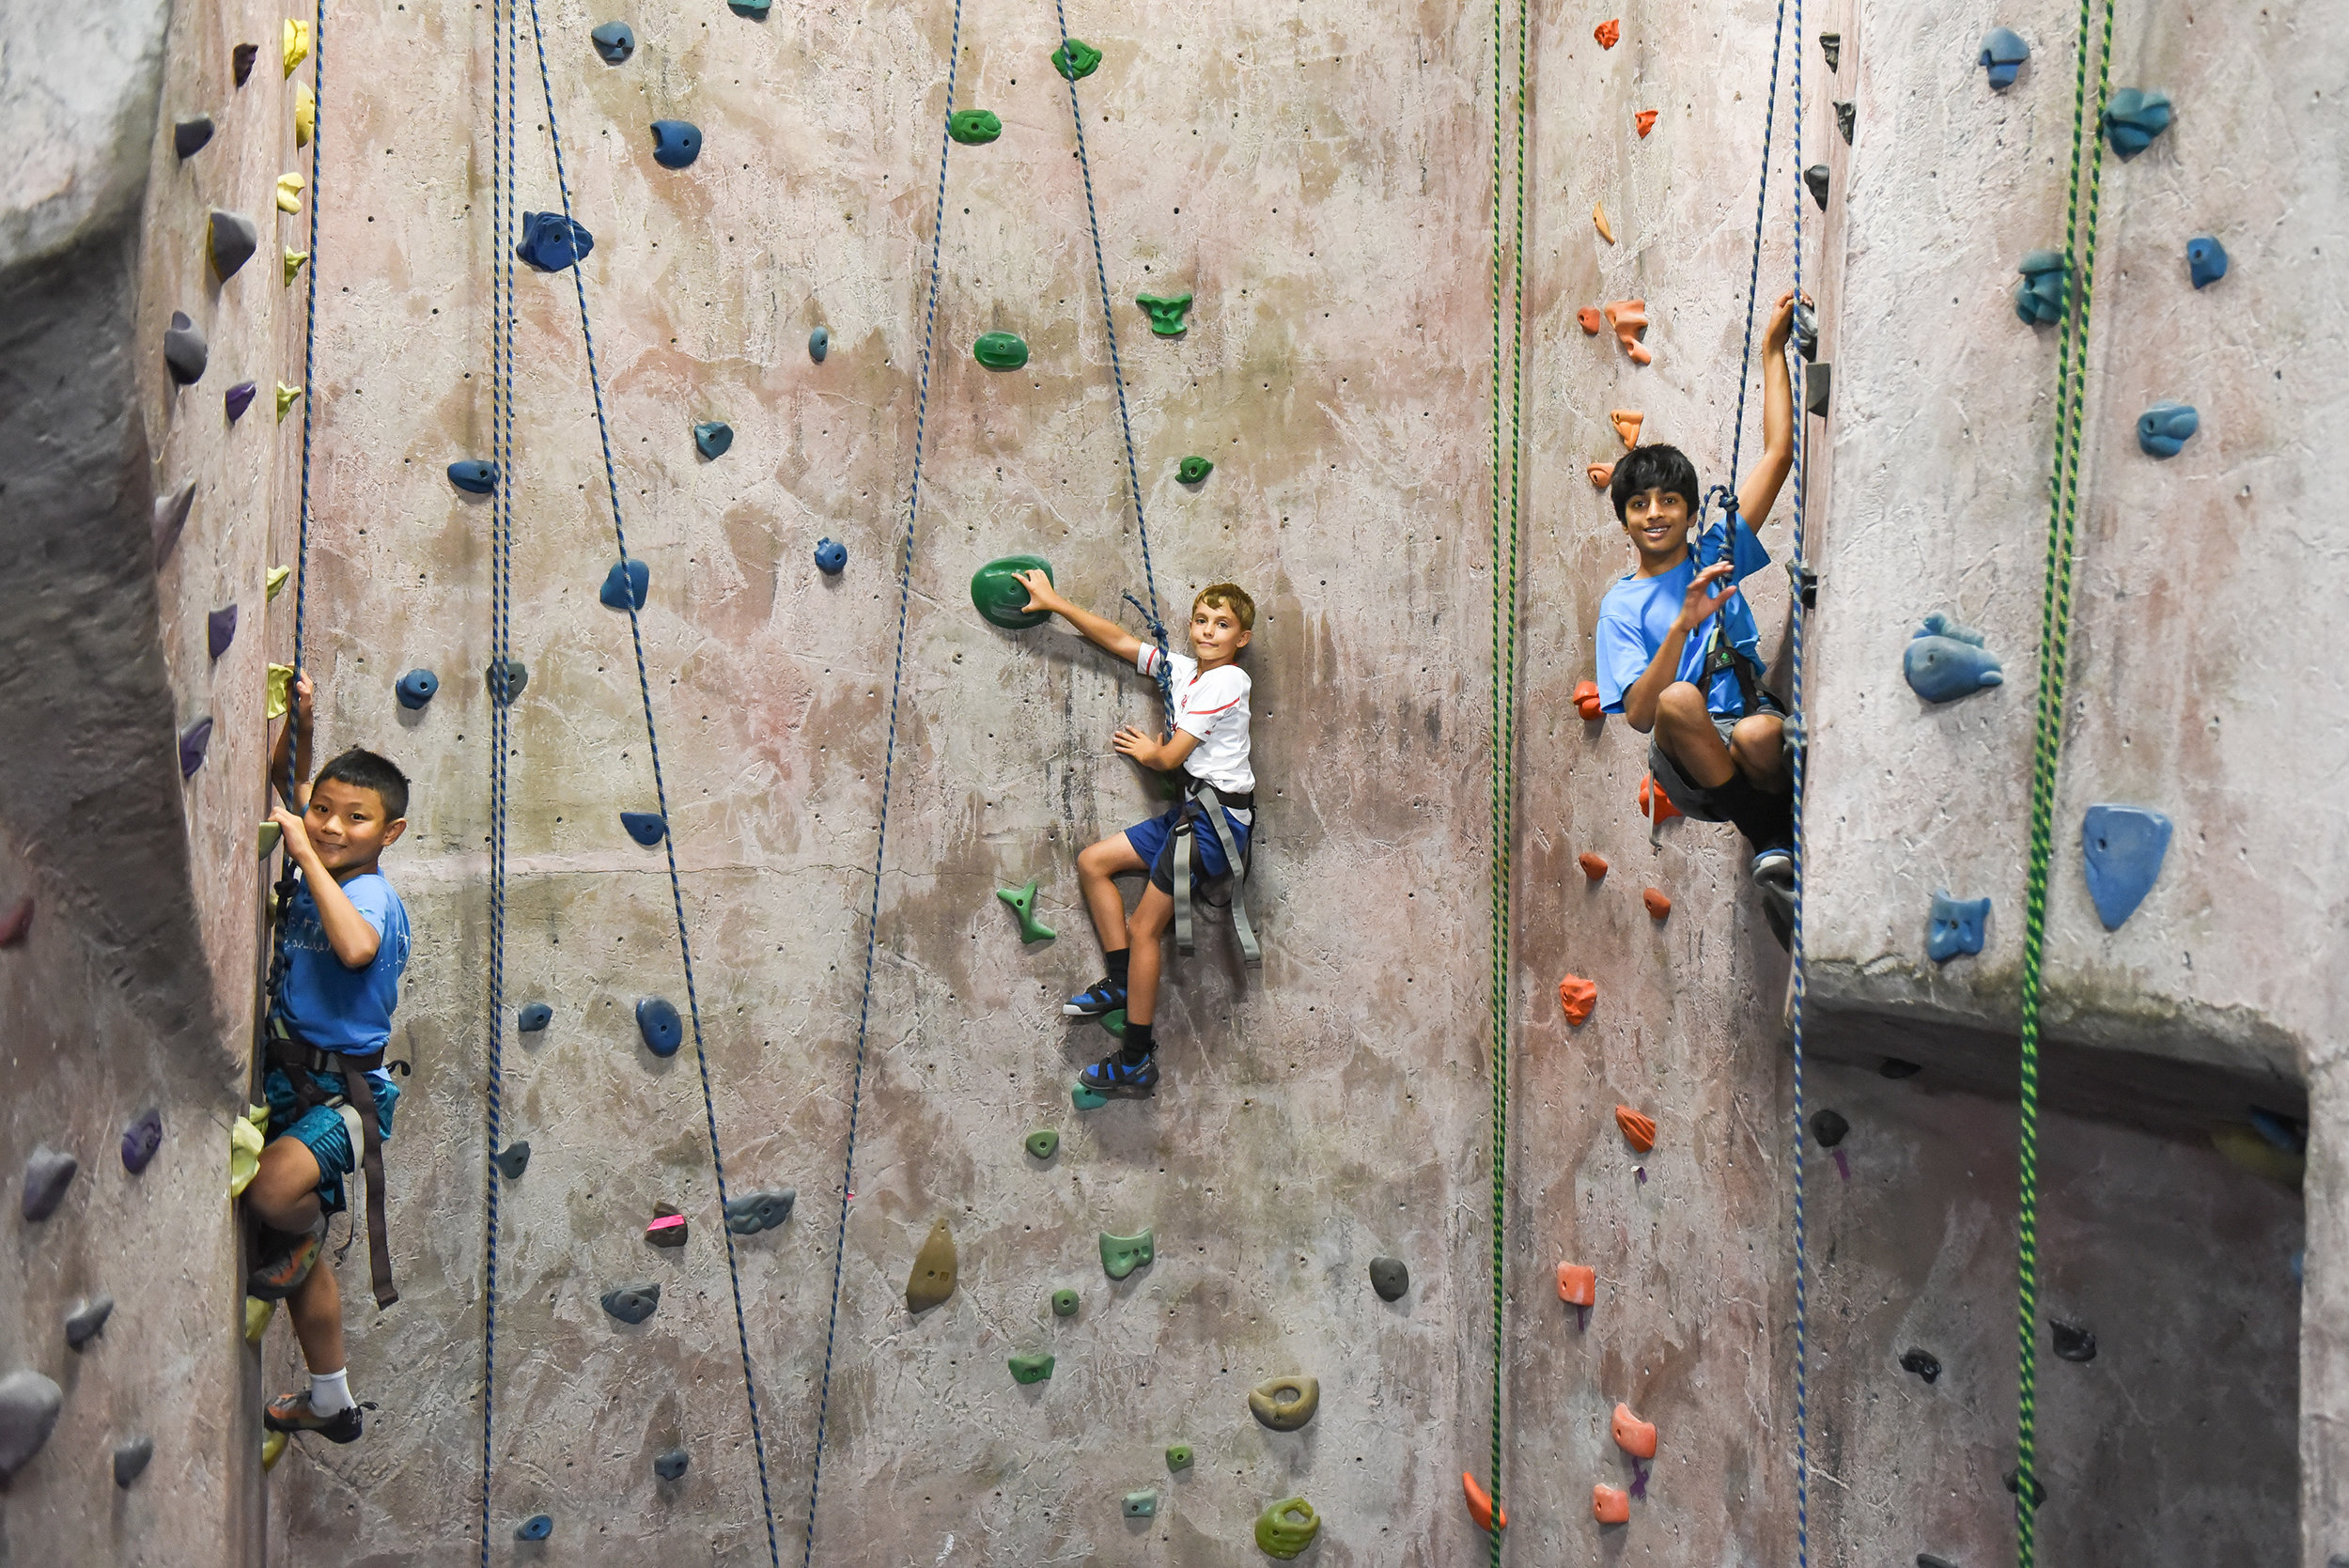 Teambuilding event - Climbing area reserved for group/event to belay for climbers. Staff can organize team building climbing games if desired. Party room reserved for whatever food and treats you want to bring.